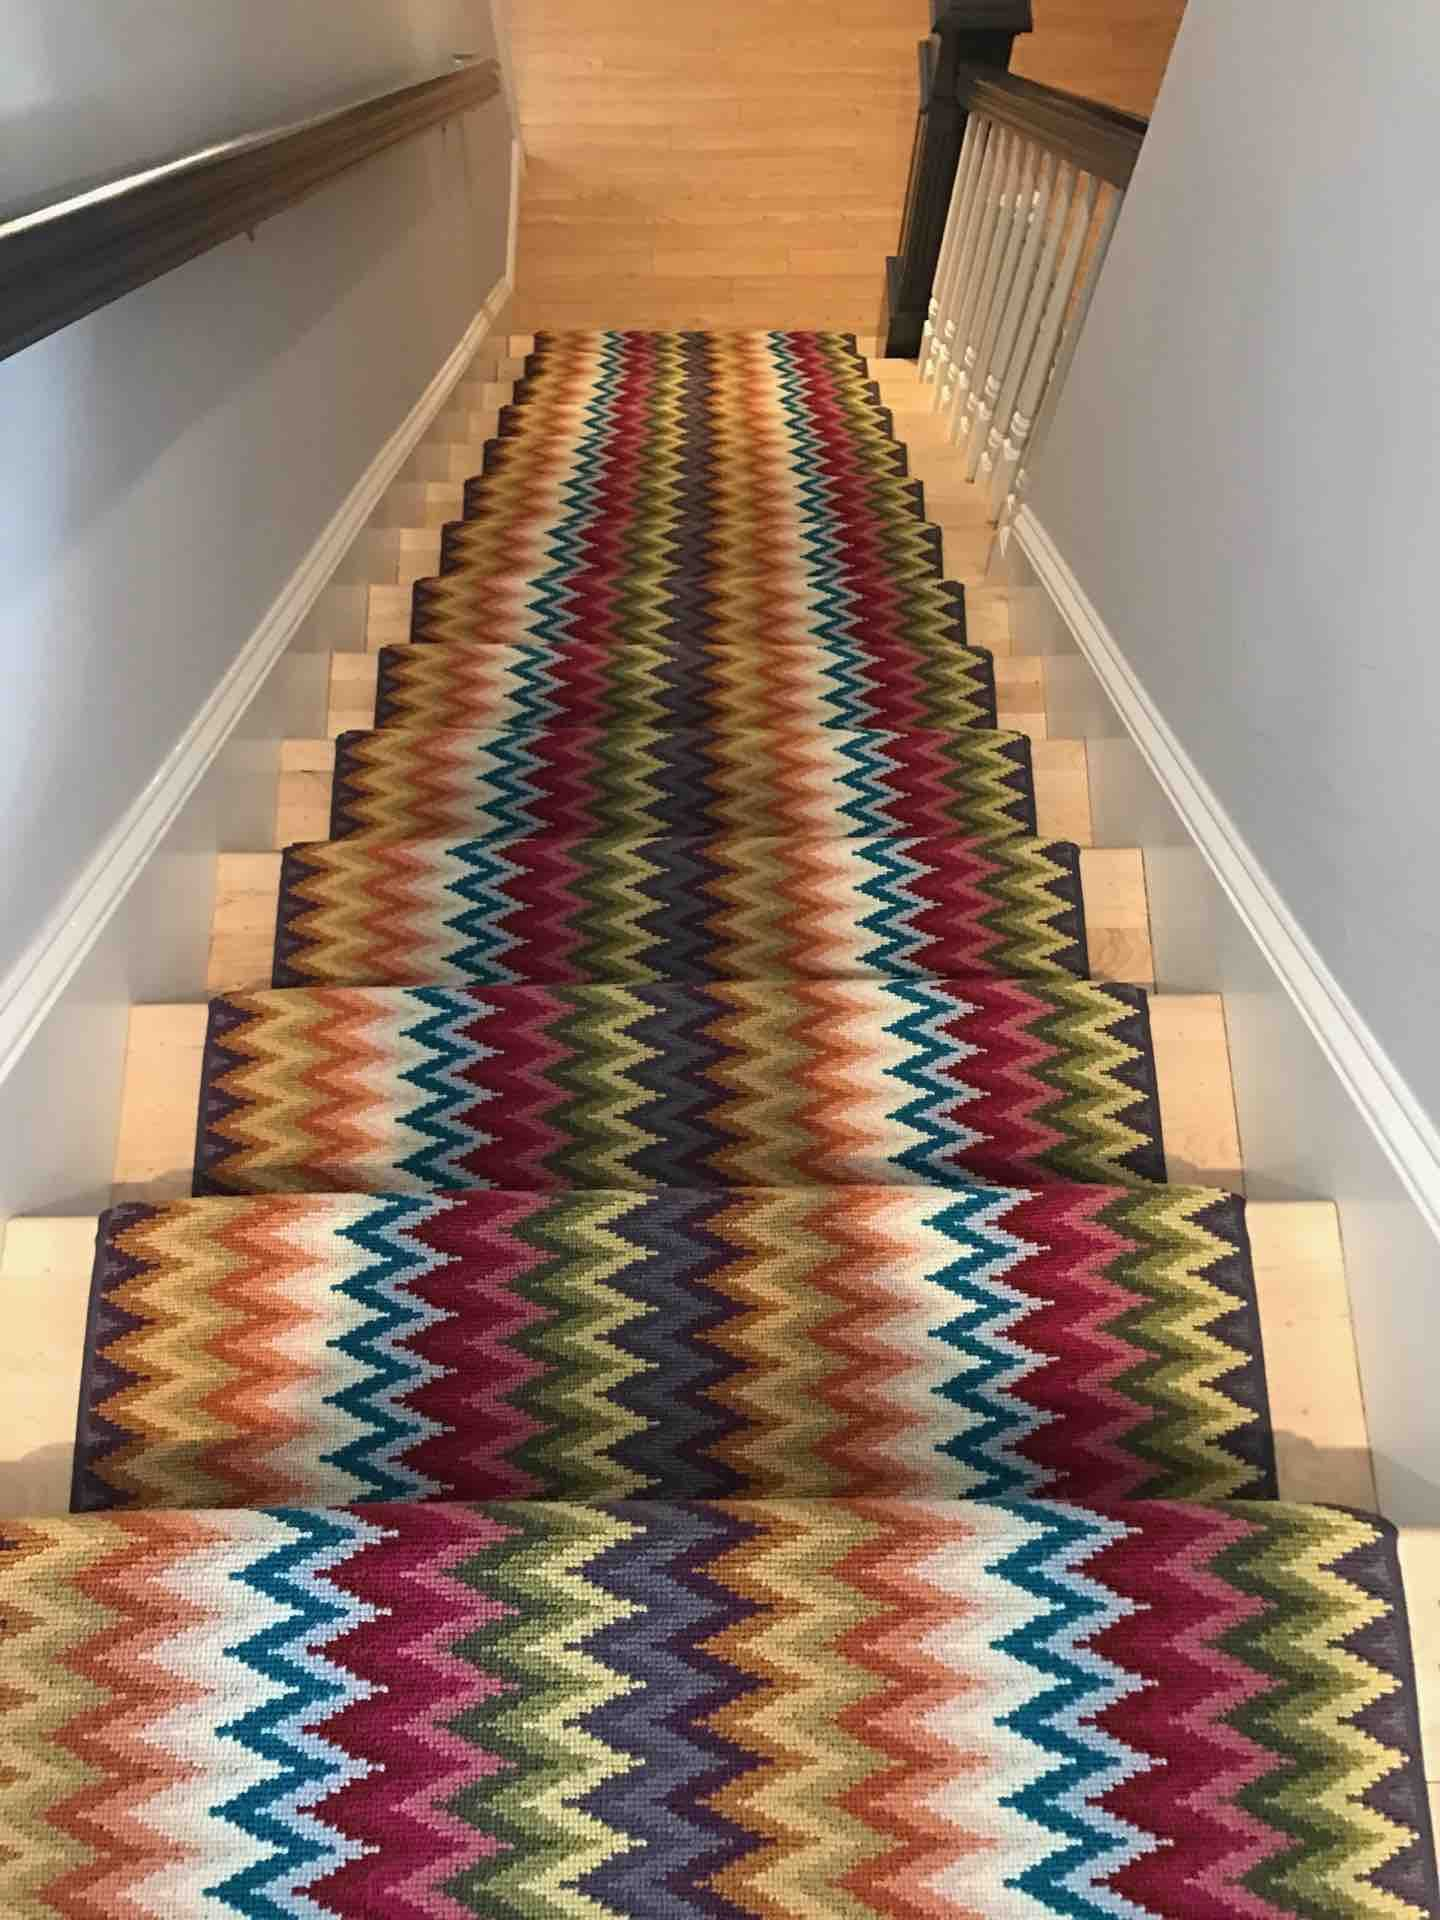 This Colorful Stair Runner And Its Zig Zag Pattern Bring An | Zig Zag Carpet On Stairs | Mohawk Patterned Carpet | Stair Triangular Landing | Before And After | American Style | Silver Grey